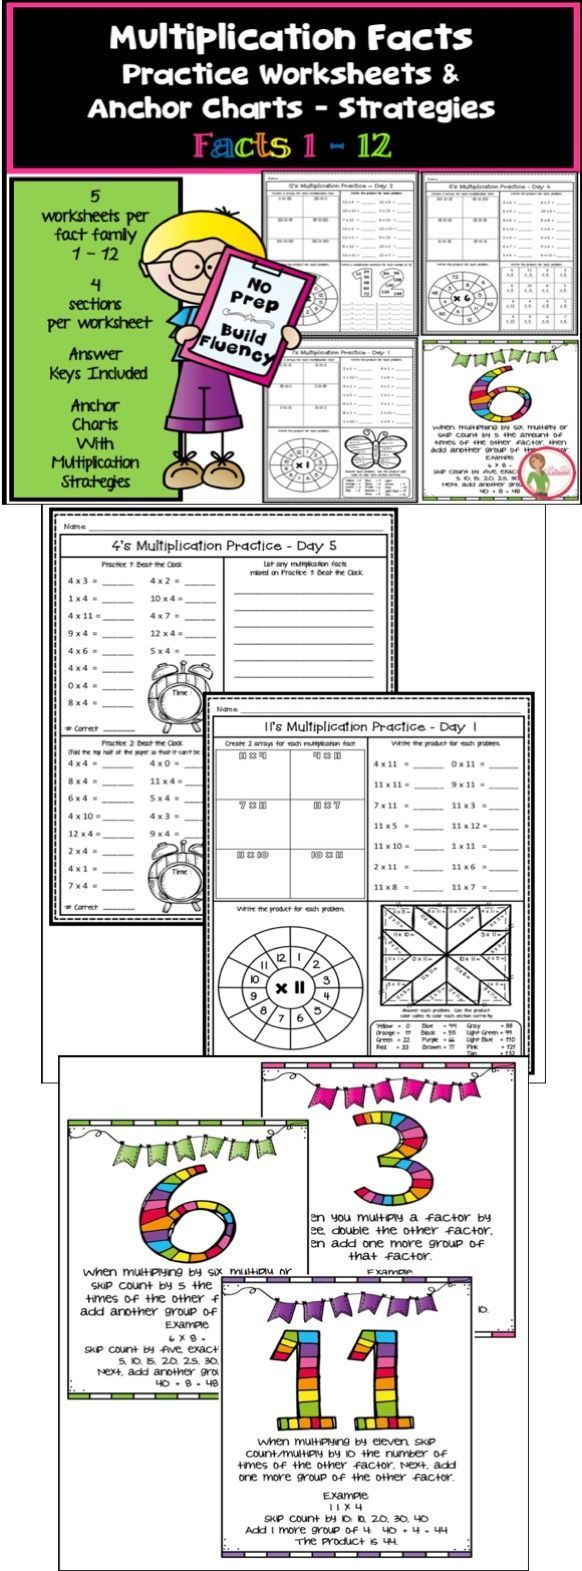 Multiplication Facts Worksheets / Anchor Charts Multiplication ...